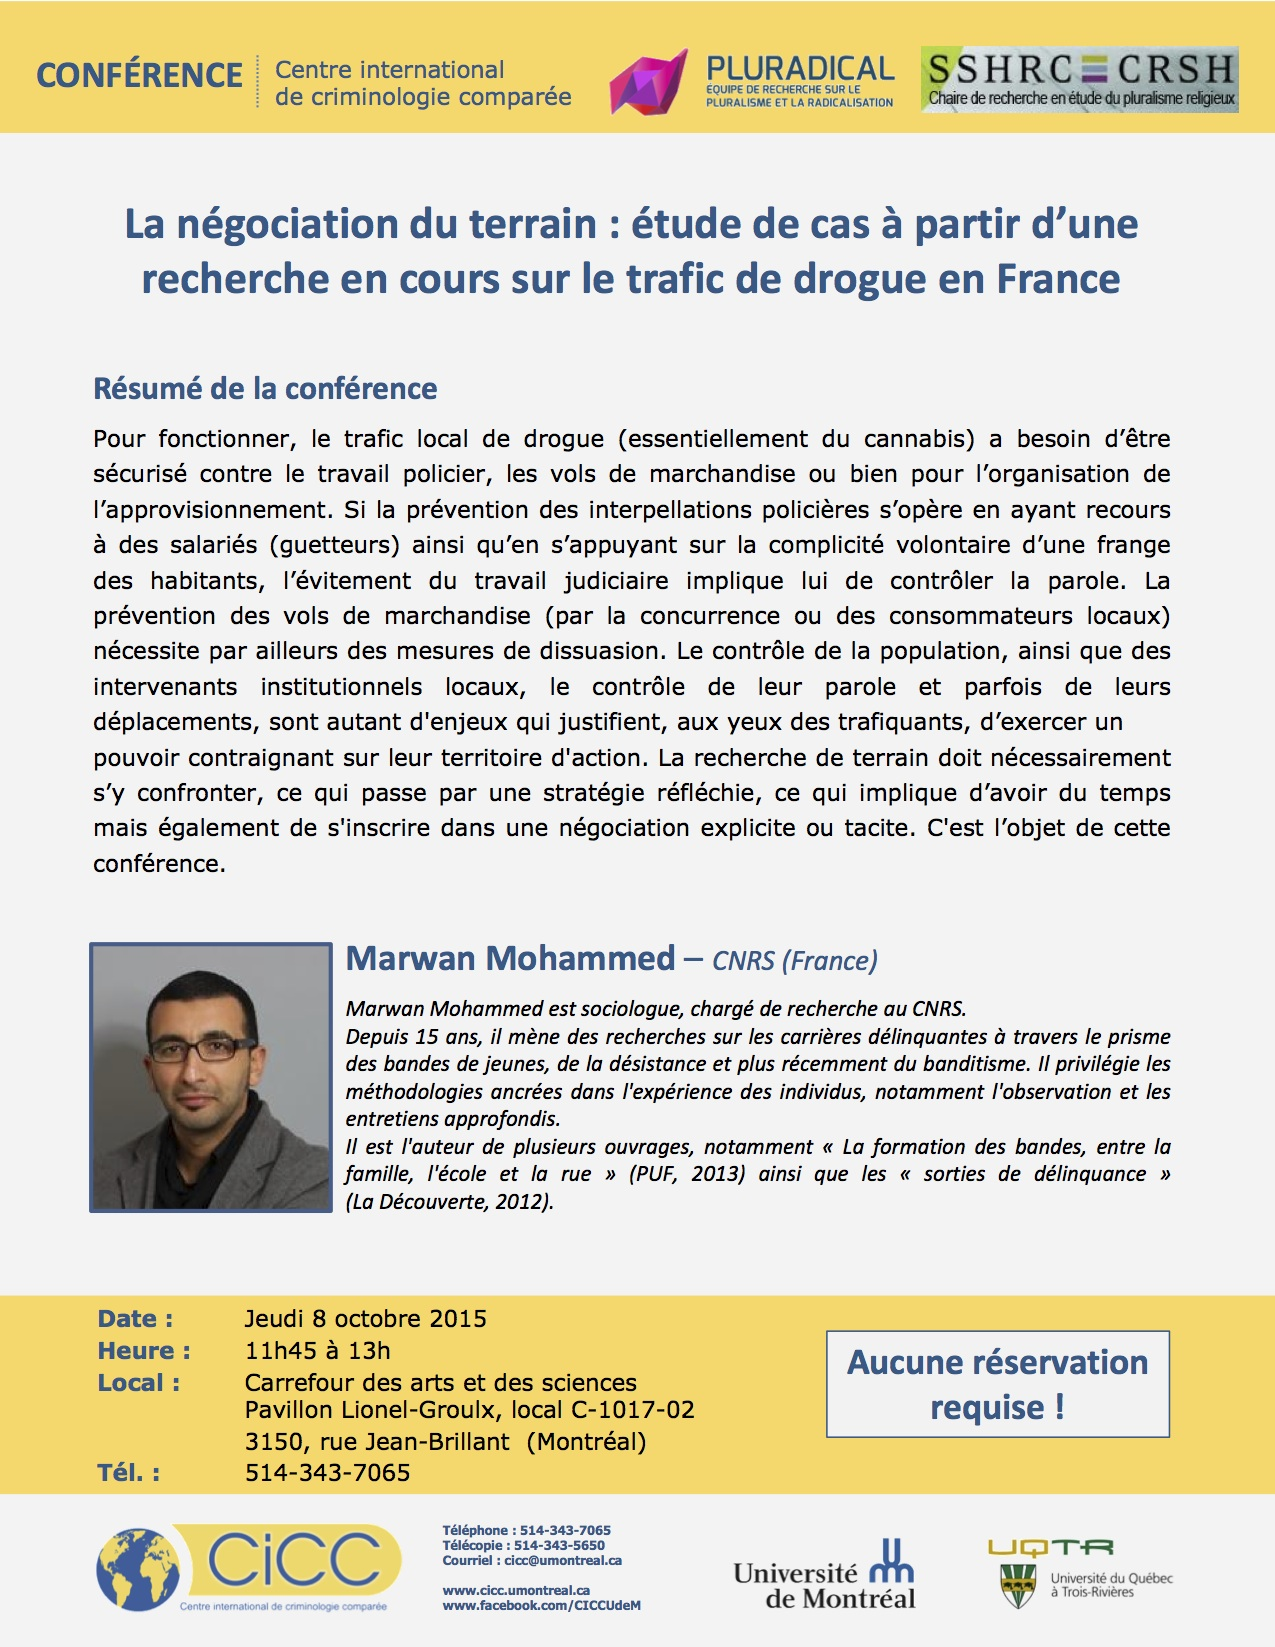 affichage_conference_mmohammed